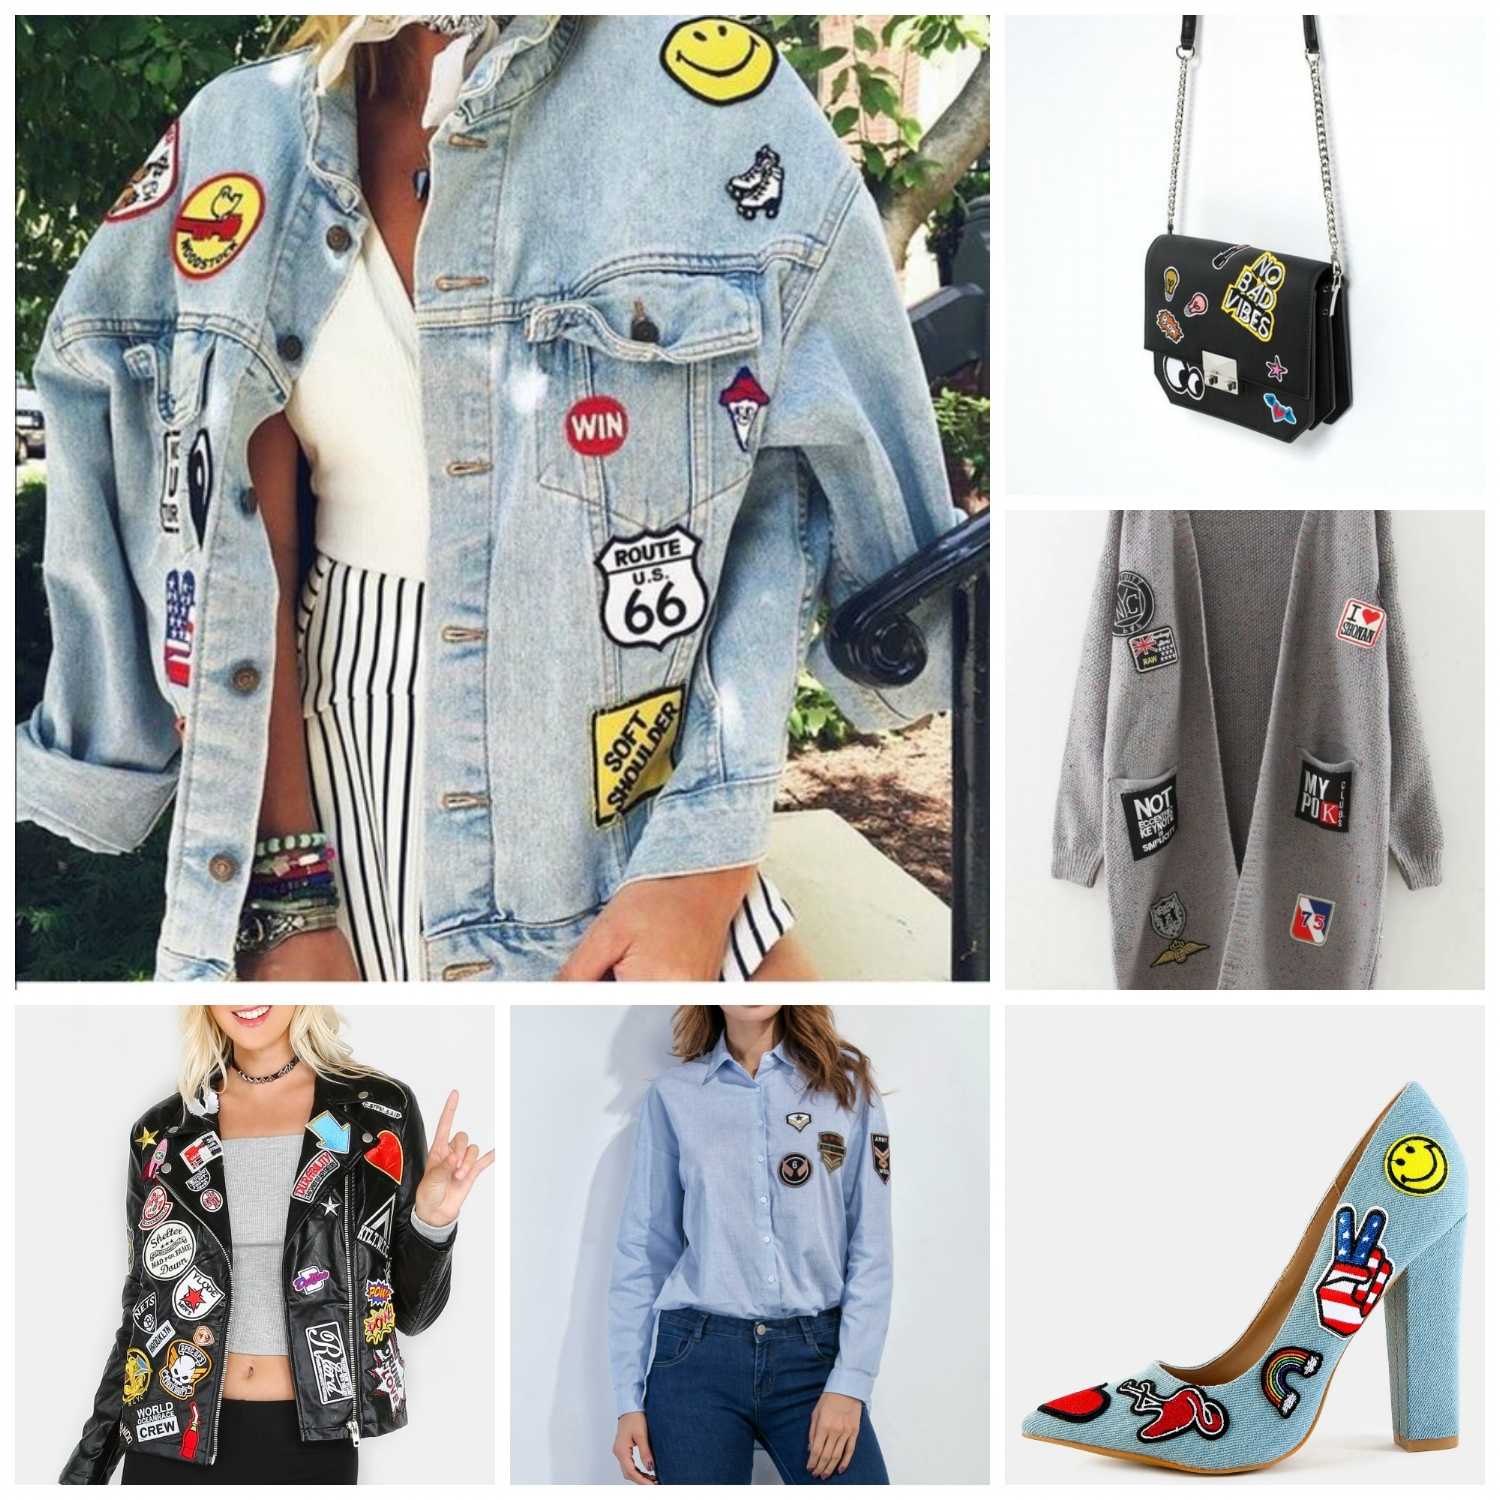 Here's a little more inspiration of ways to incorporate the patch trend into your wardrobe. (Photo collage photos were taken from Pinterest, Zara, and Shein)